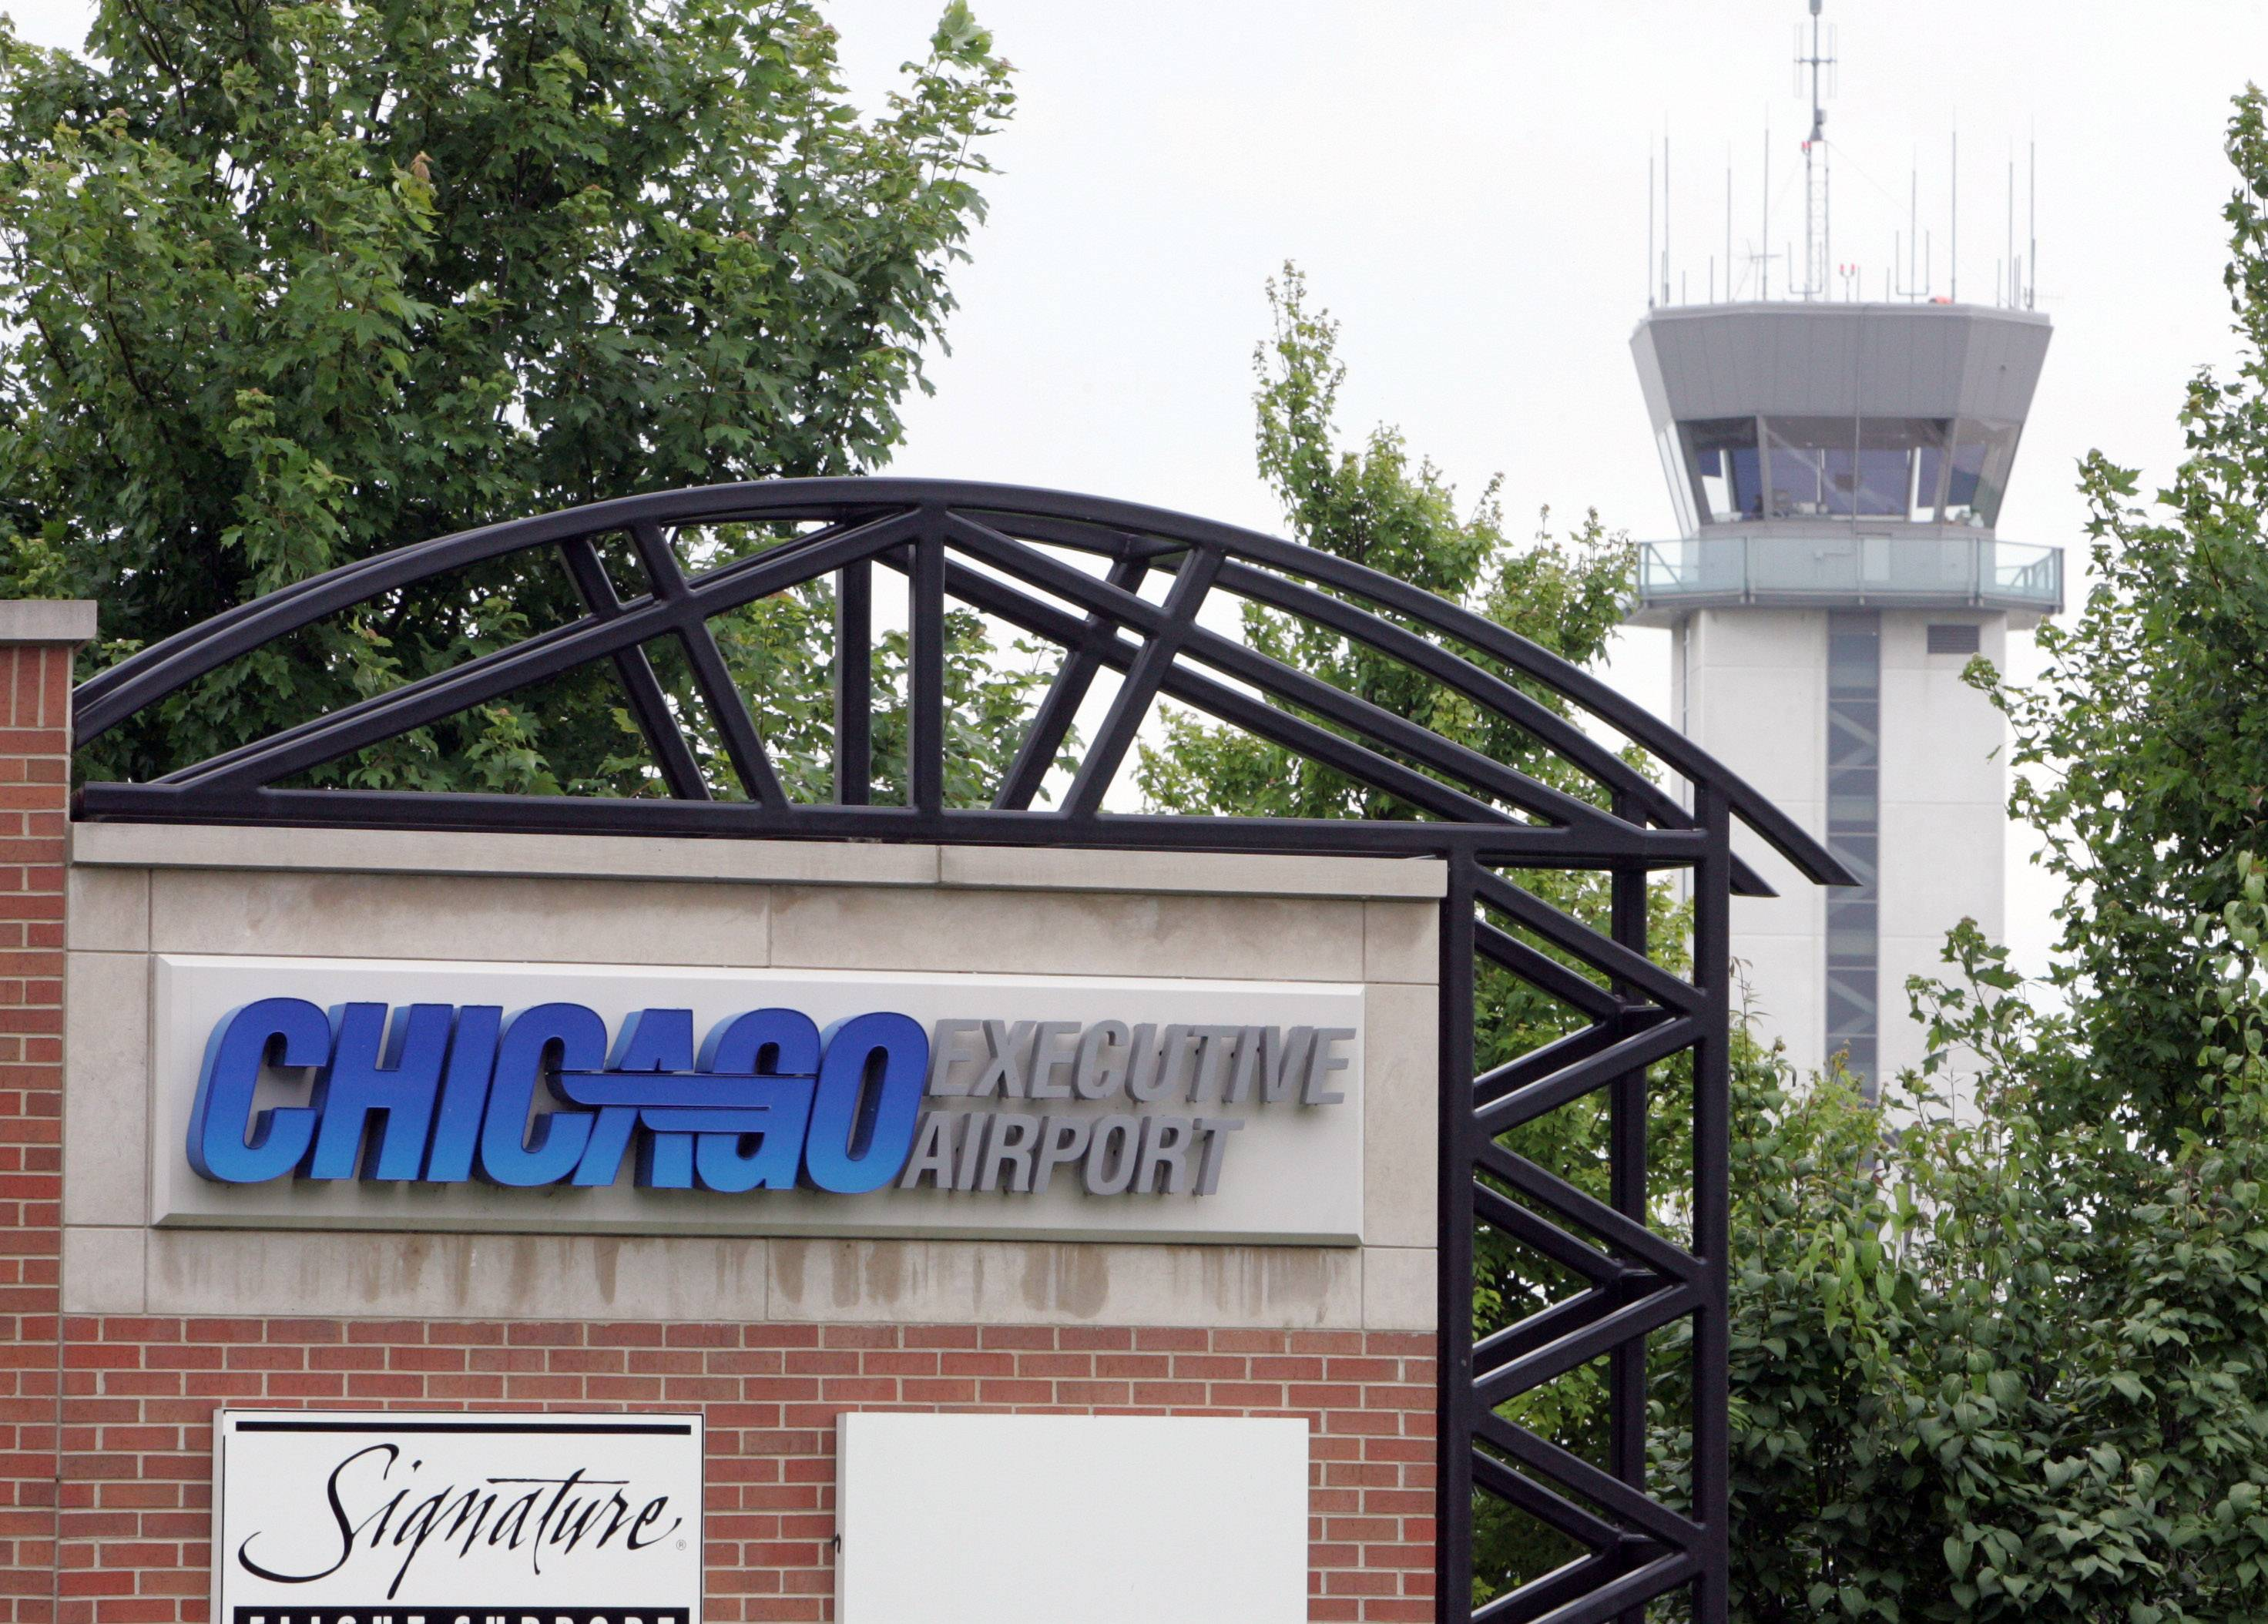 ousted chicago executive airport board members say they u0026 39 re